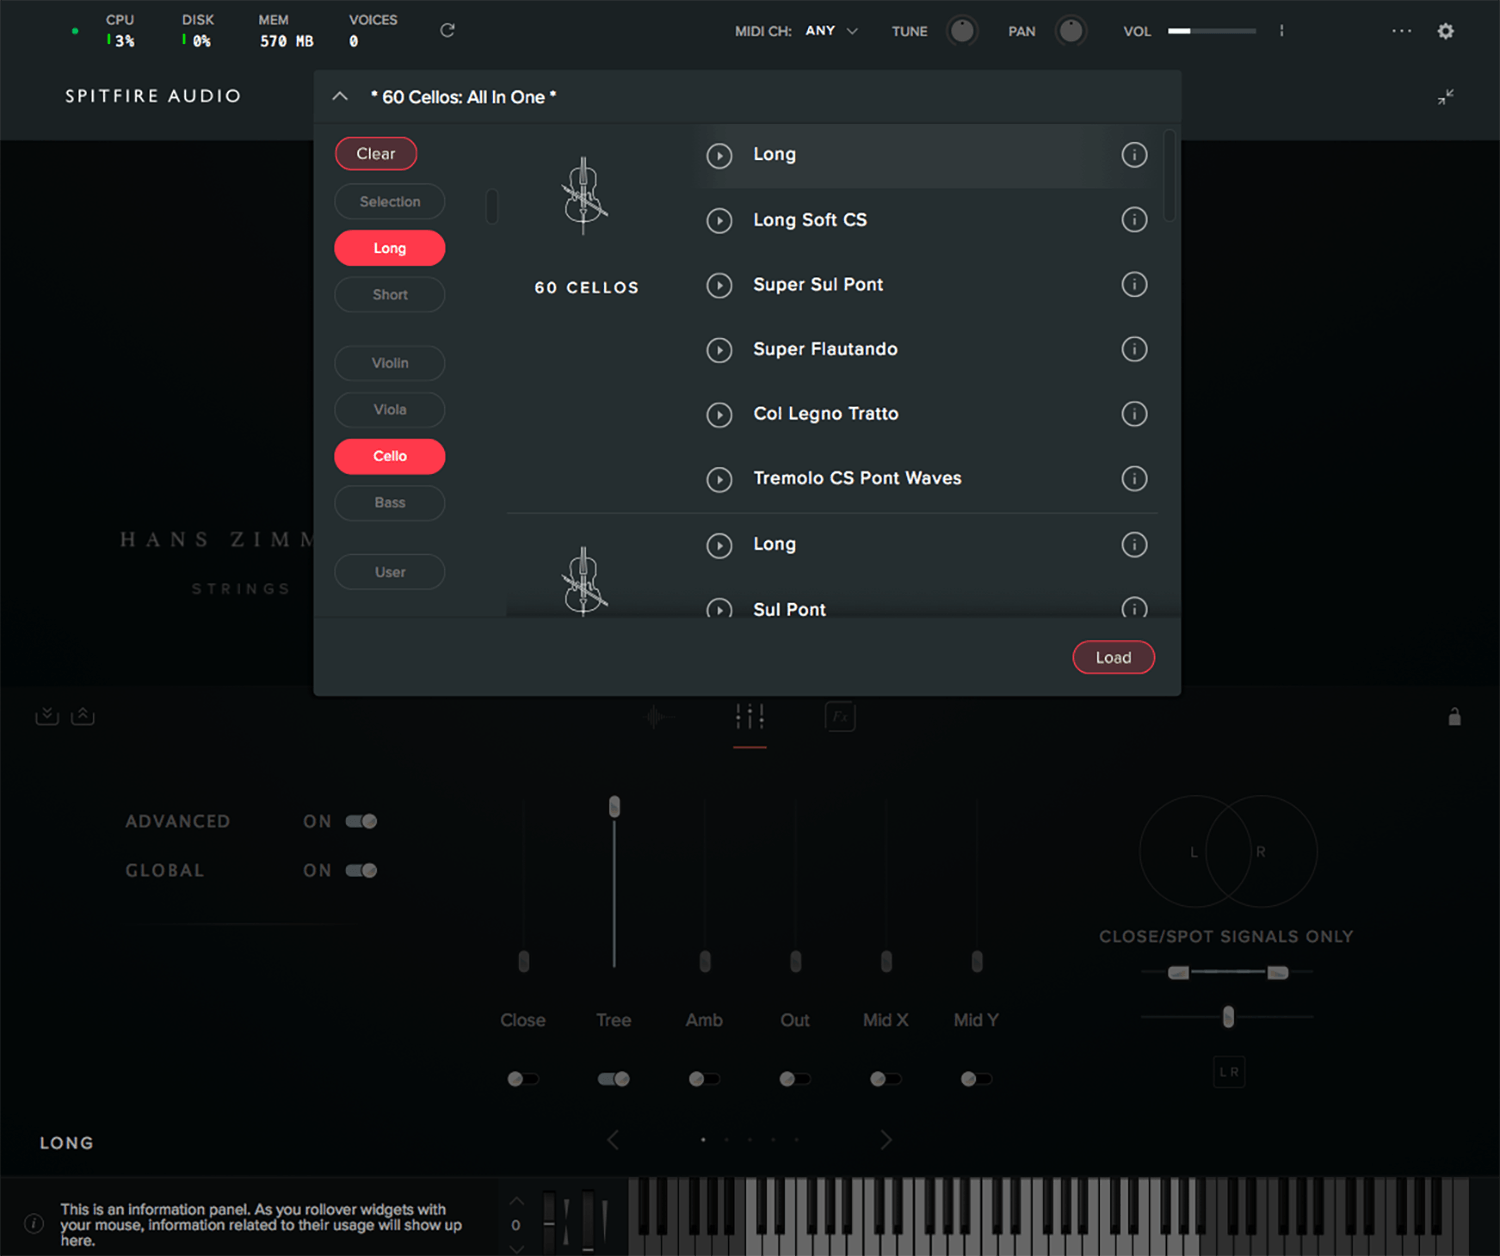 spitfire audio hans zimmer strings interface patch browser